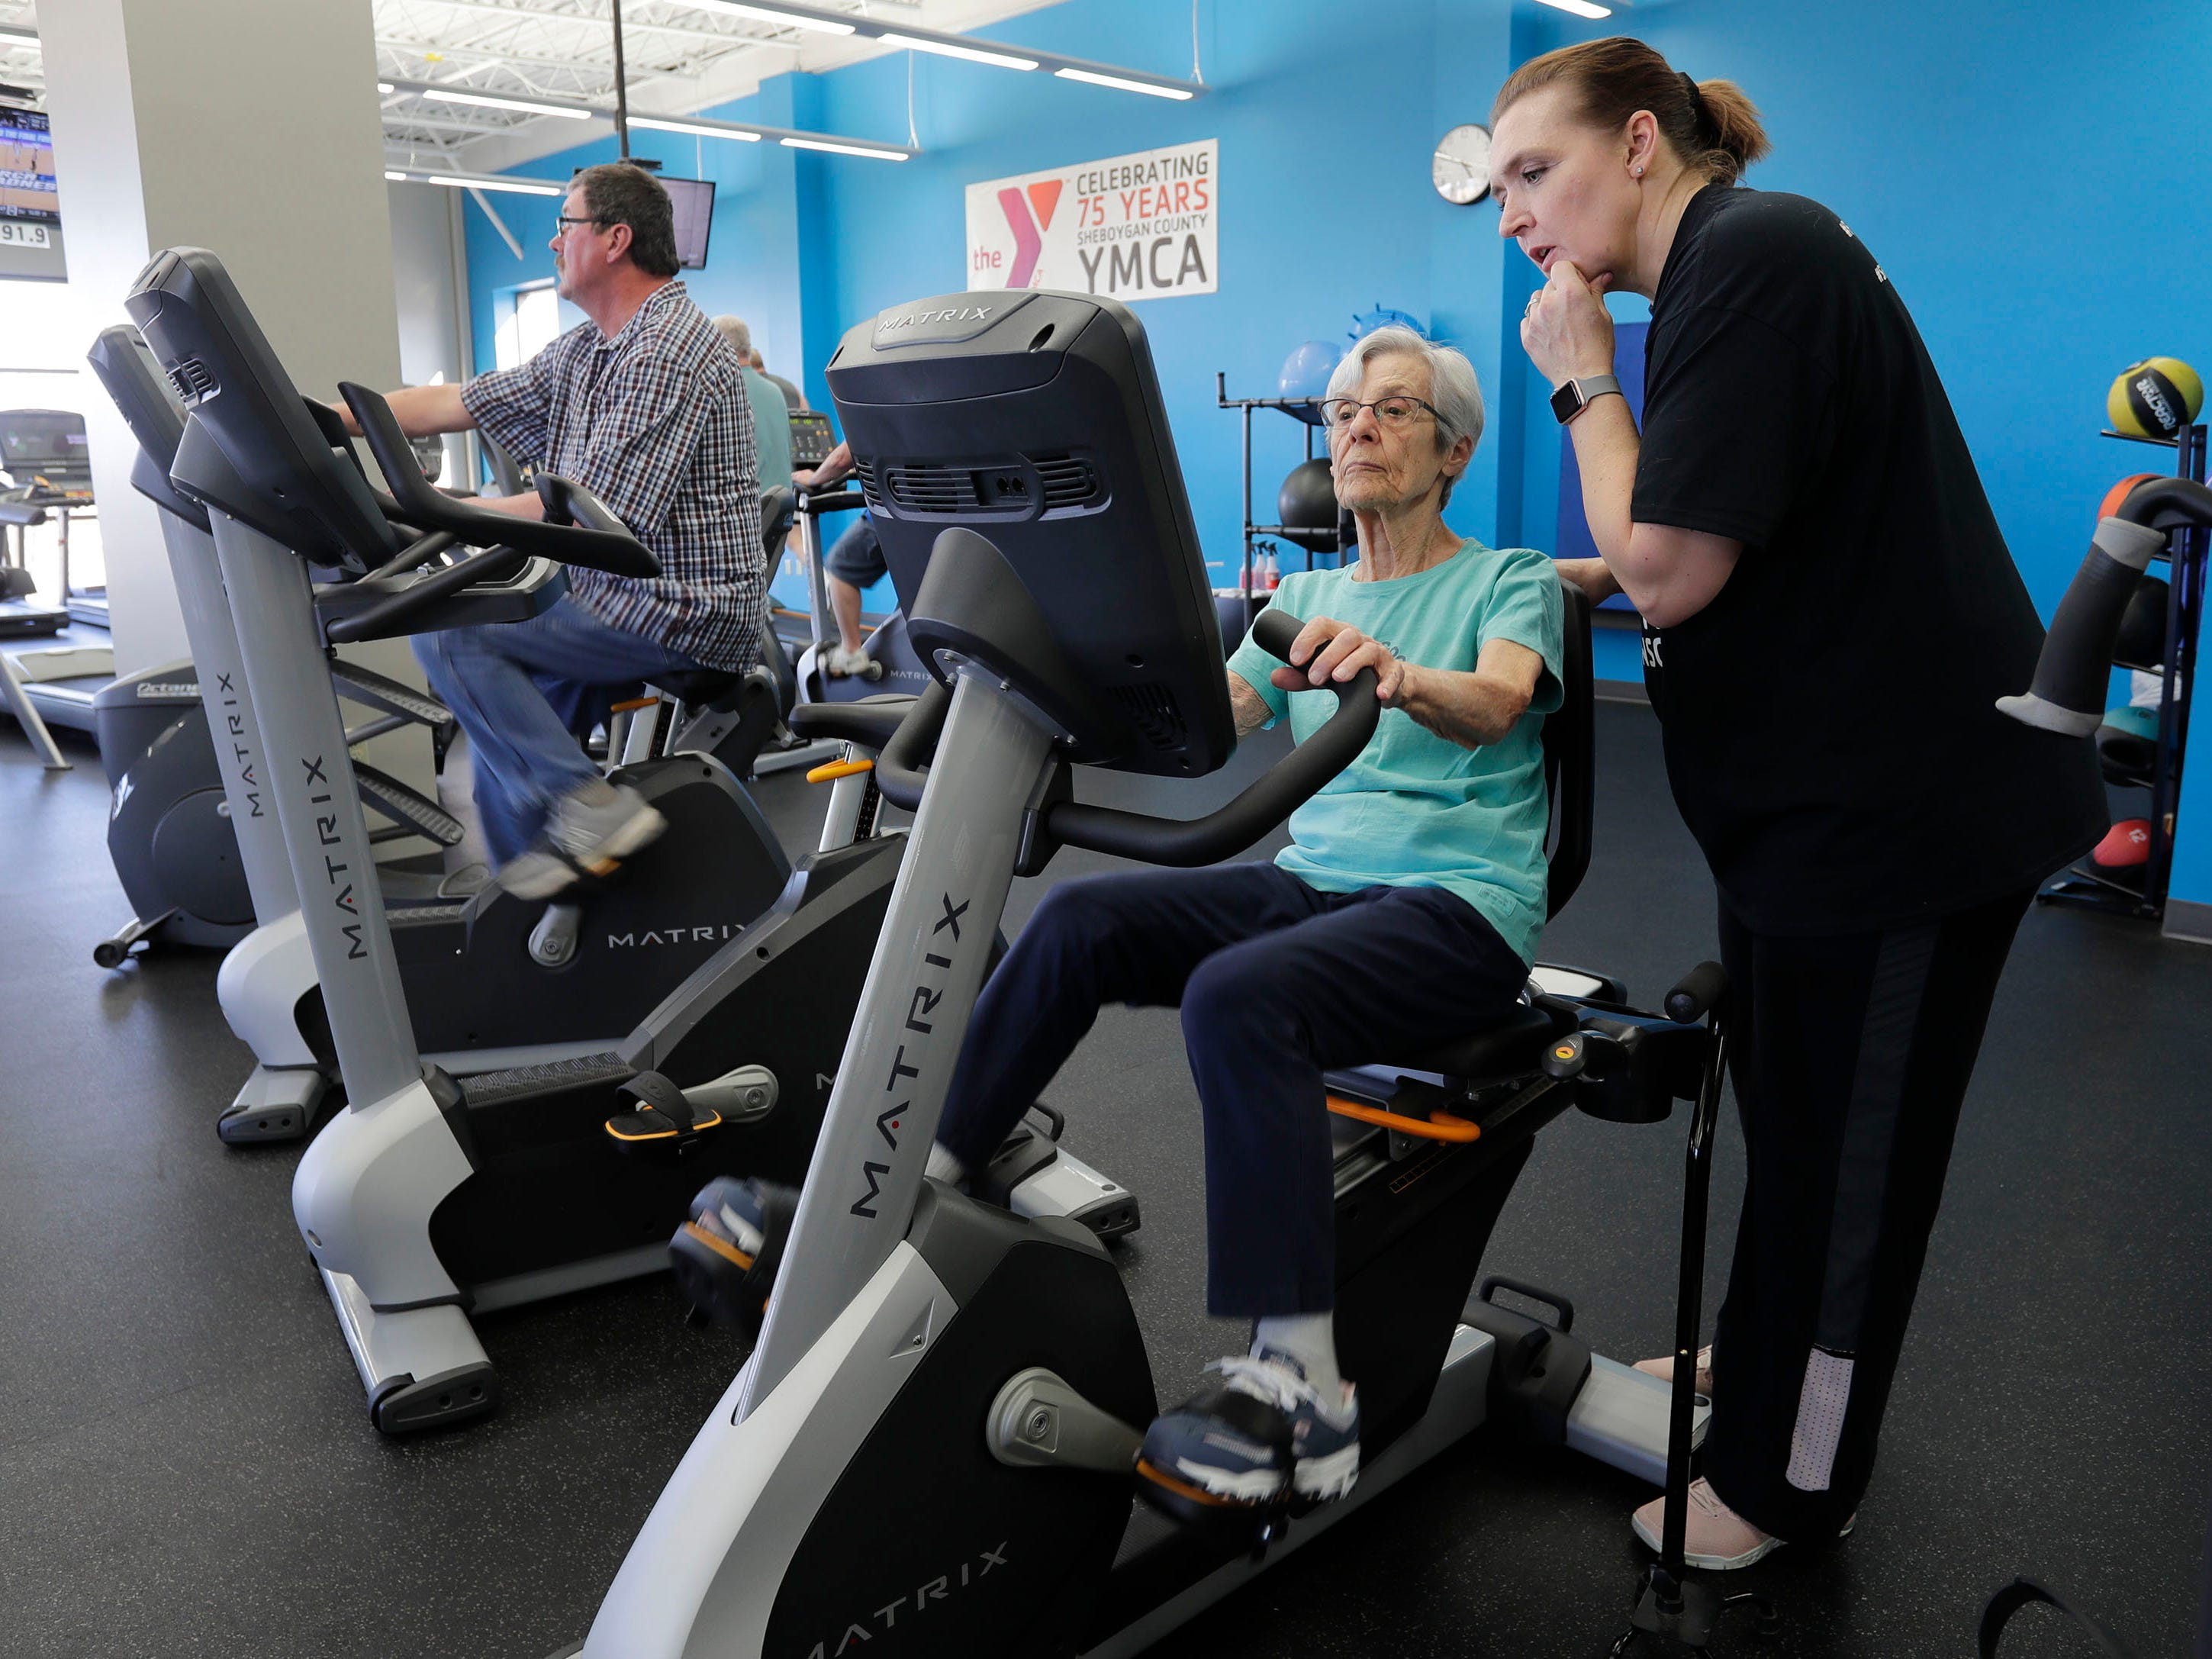 Fighting Parkinson's instructor Jana Adams, right consults Darle Kosup, center, with tips to make her stationary bike training work for helping her battle during the class at the YMCA, Thursday March 21, 2019, in Sheboygan, Wis.